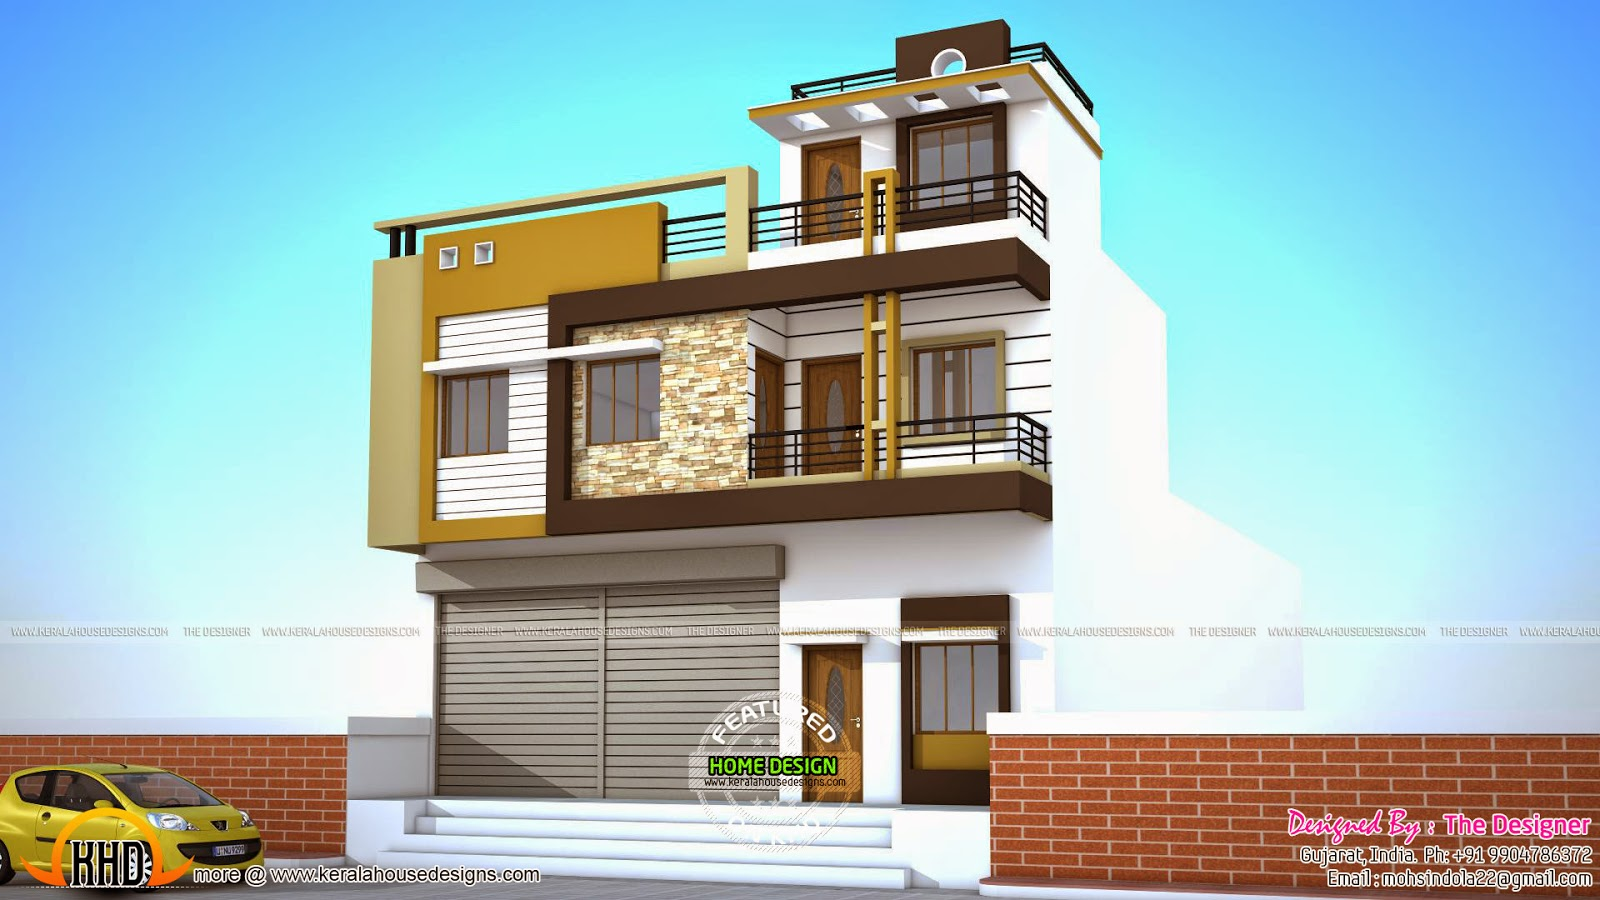 2 house plans with shops on ground floor kerala home for Two level house design